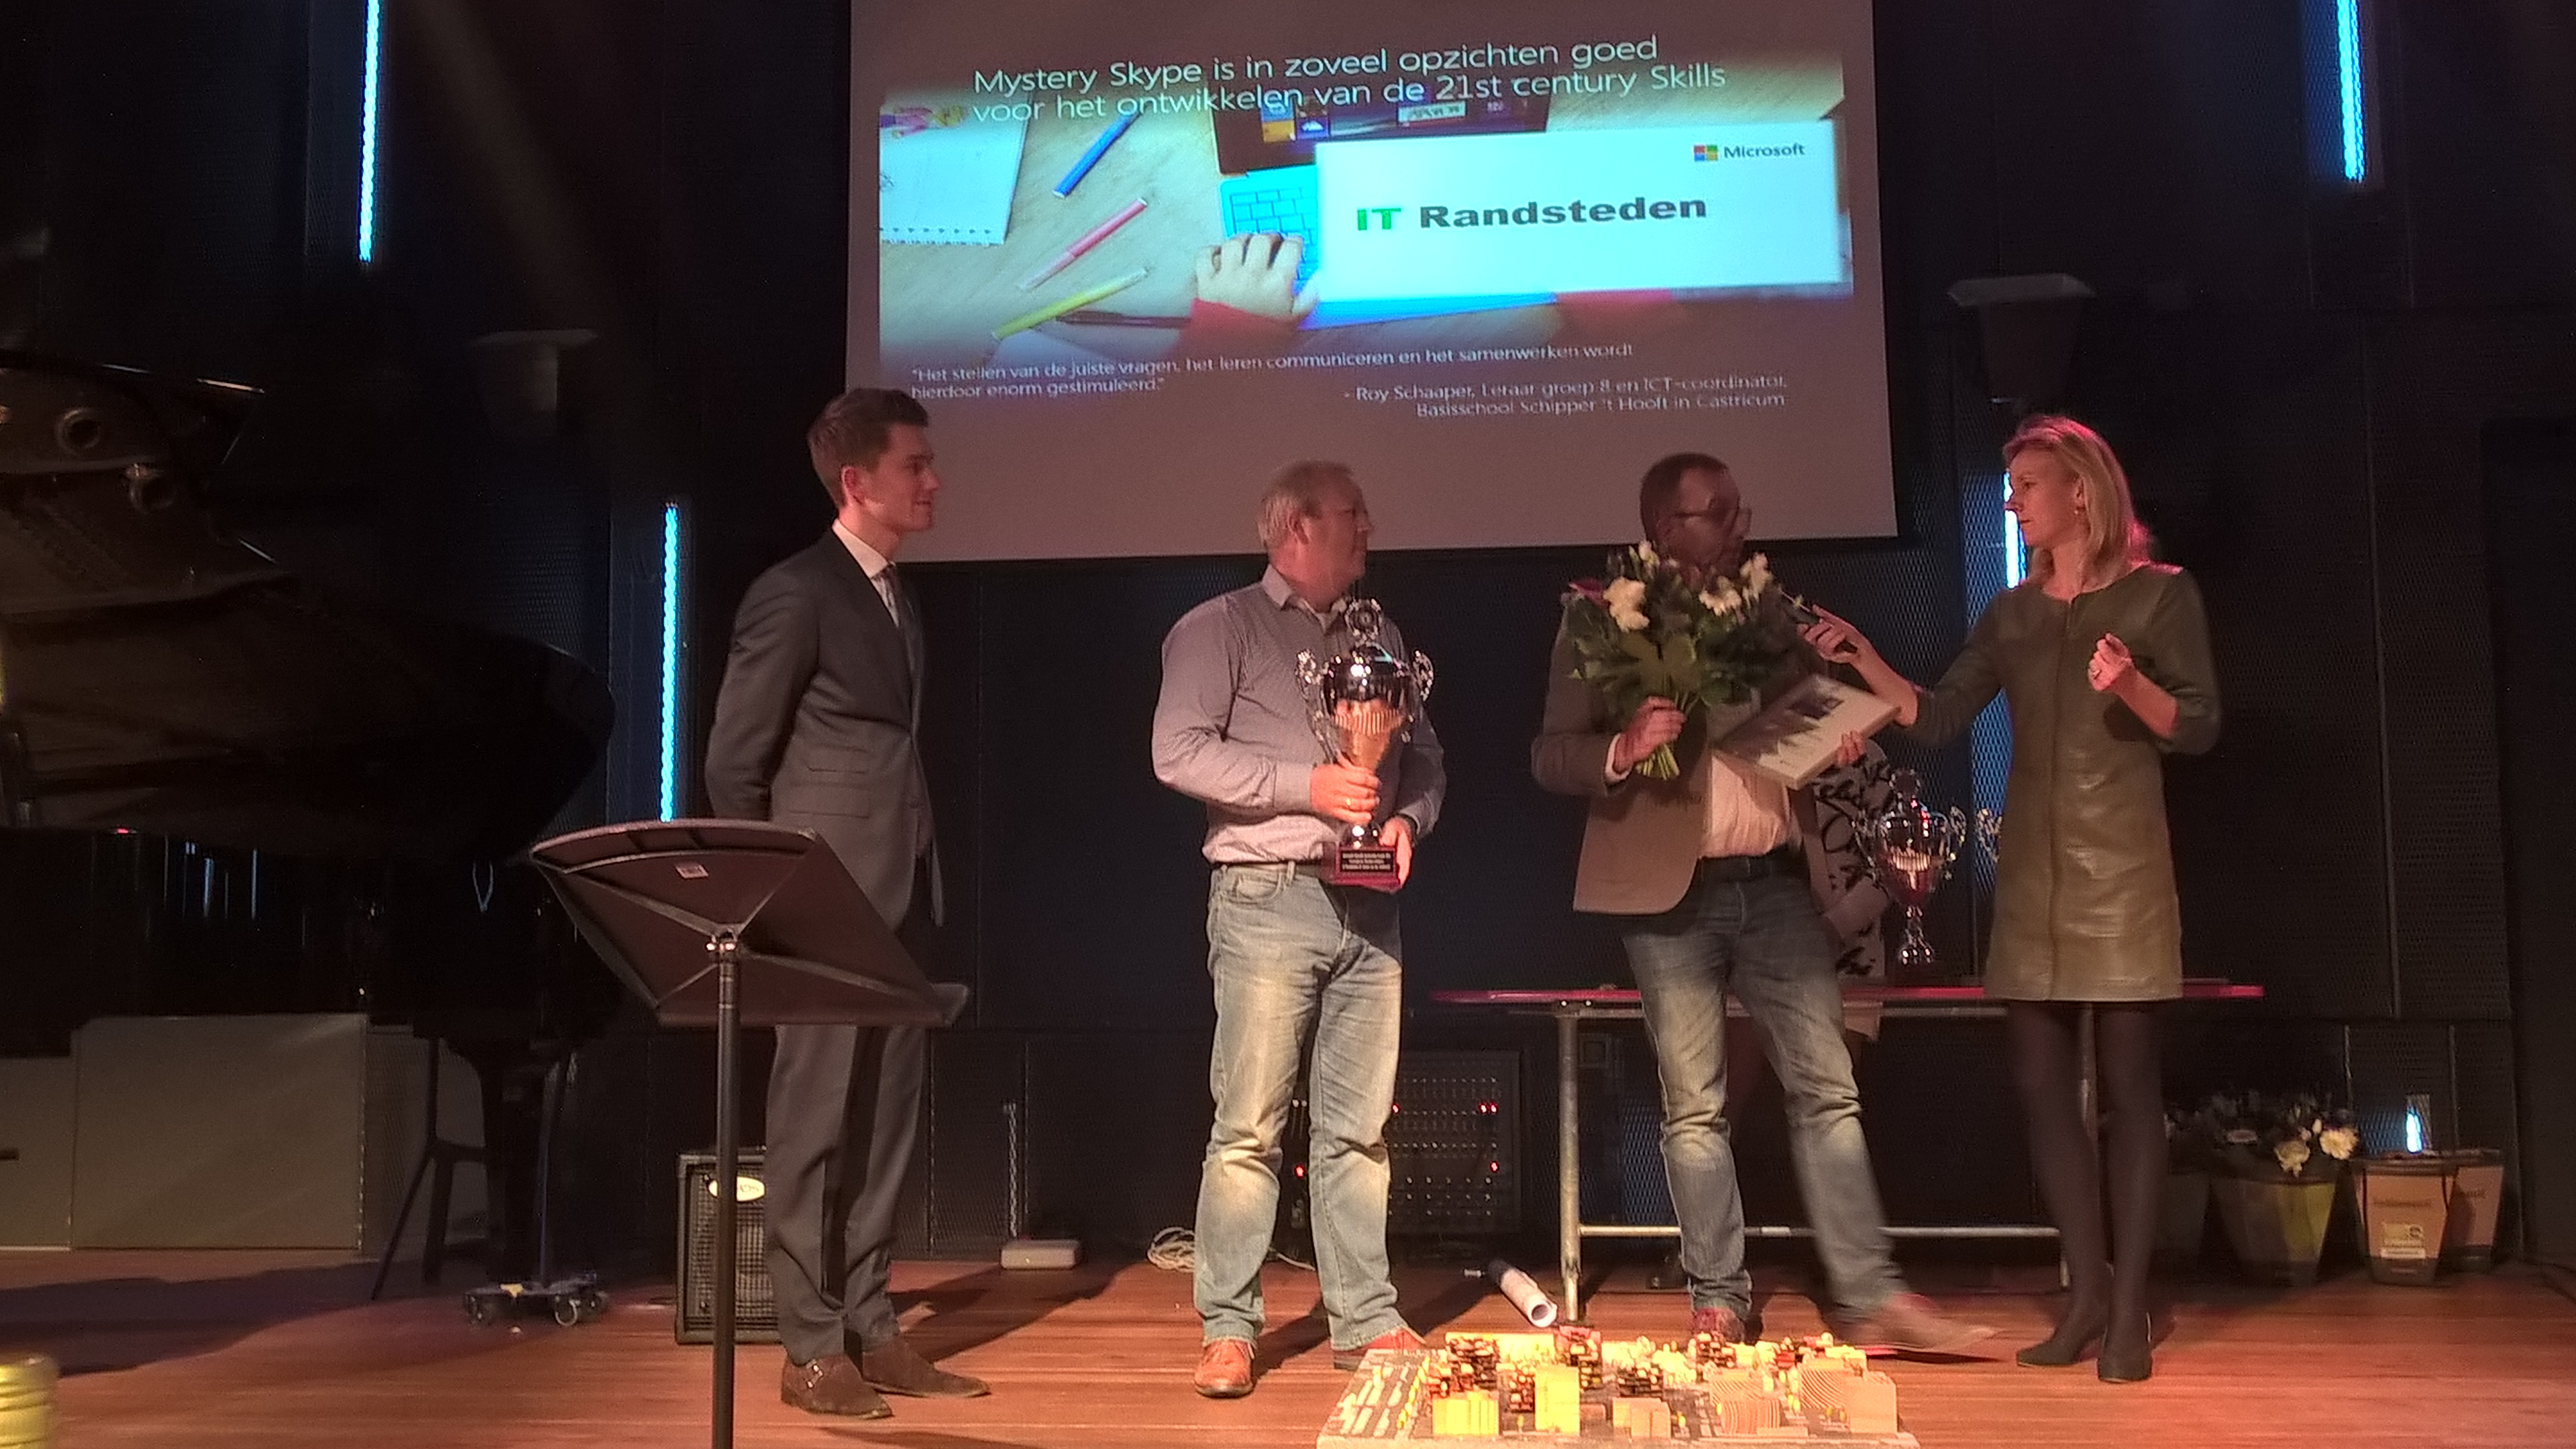 IT Randsteden Winnaar van de Microsoft Education Award